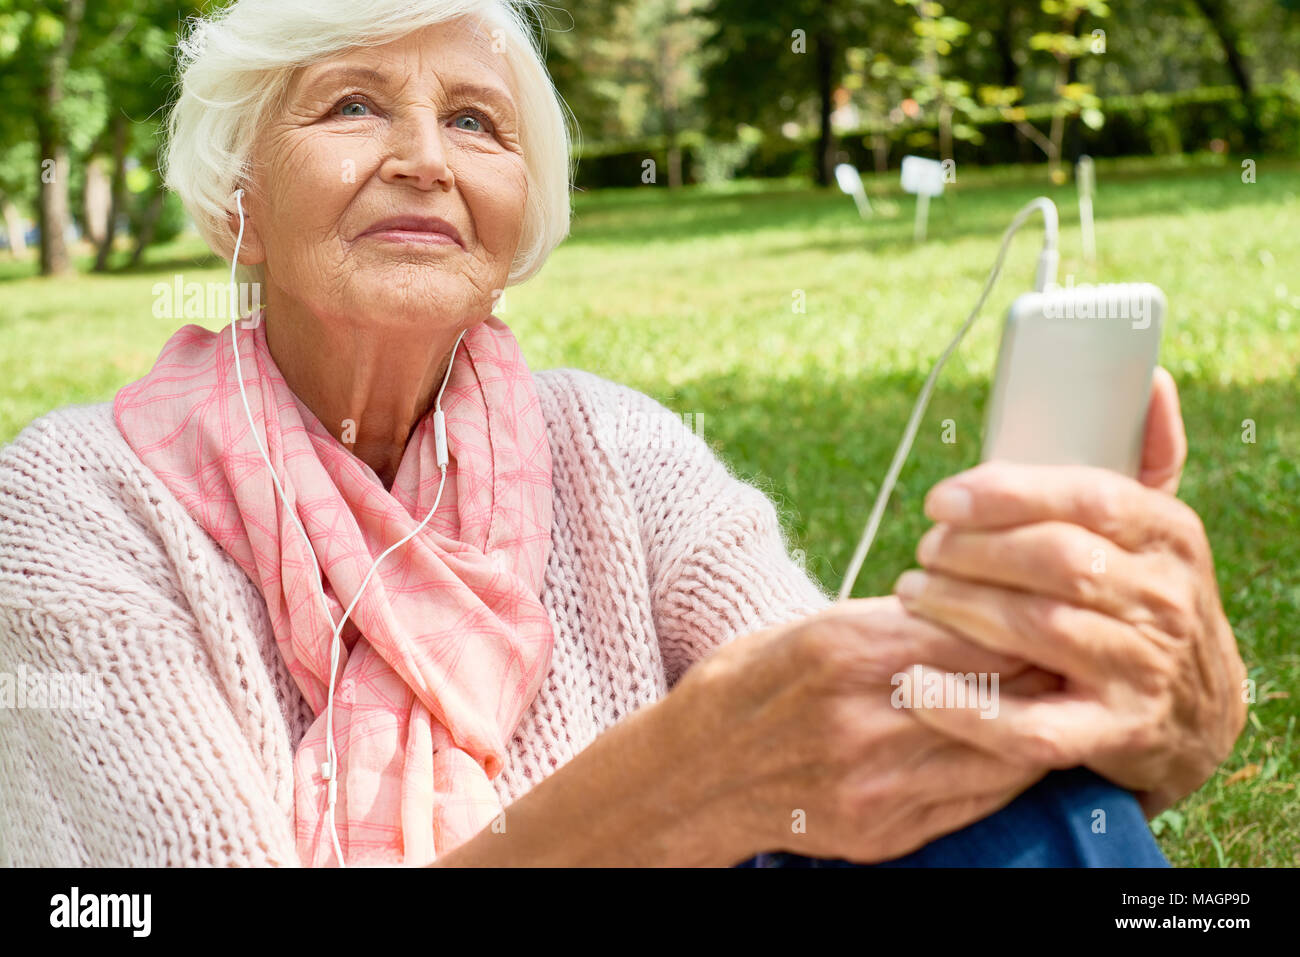 Senior Woman Using Smartphone - Stock Image